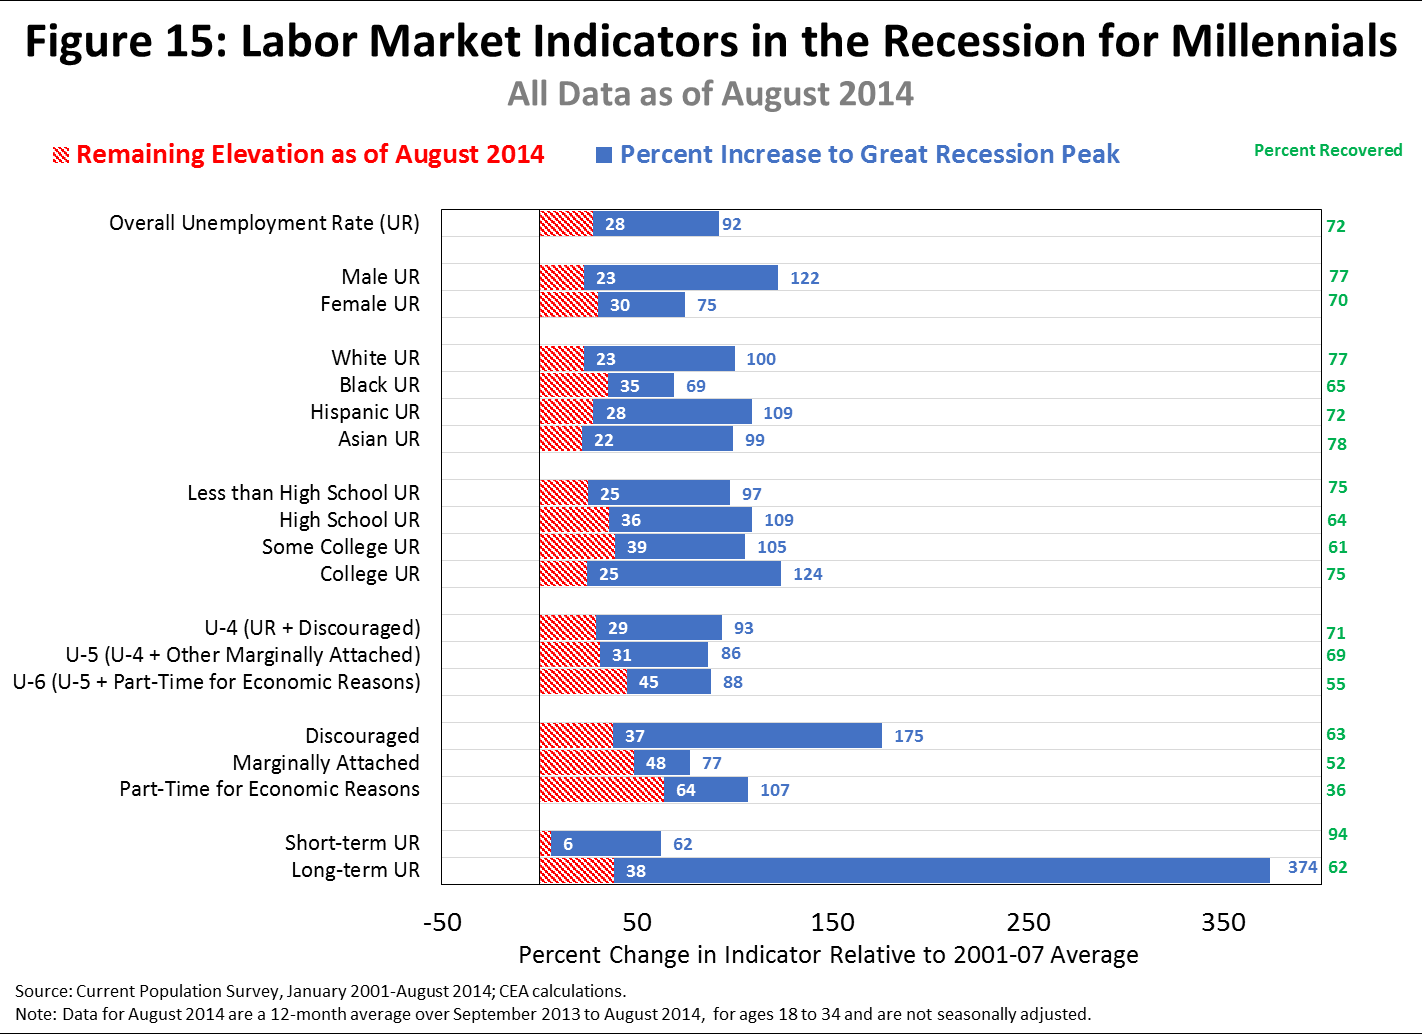 Other indicators tell a similar story while Millennials have made a substantial labor market recovery, that recovery is not complete and is slightly lagging that of other age groups, consistent with